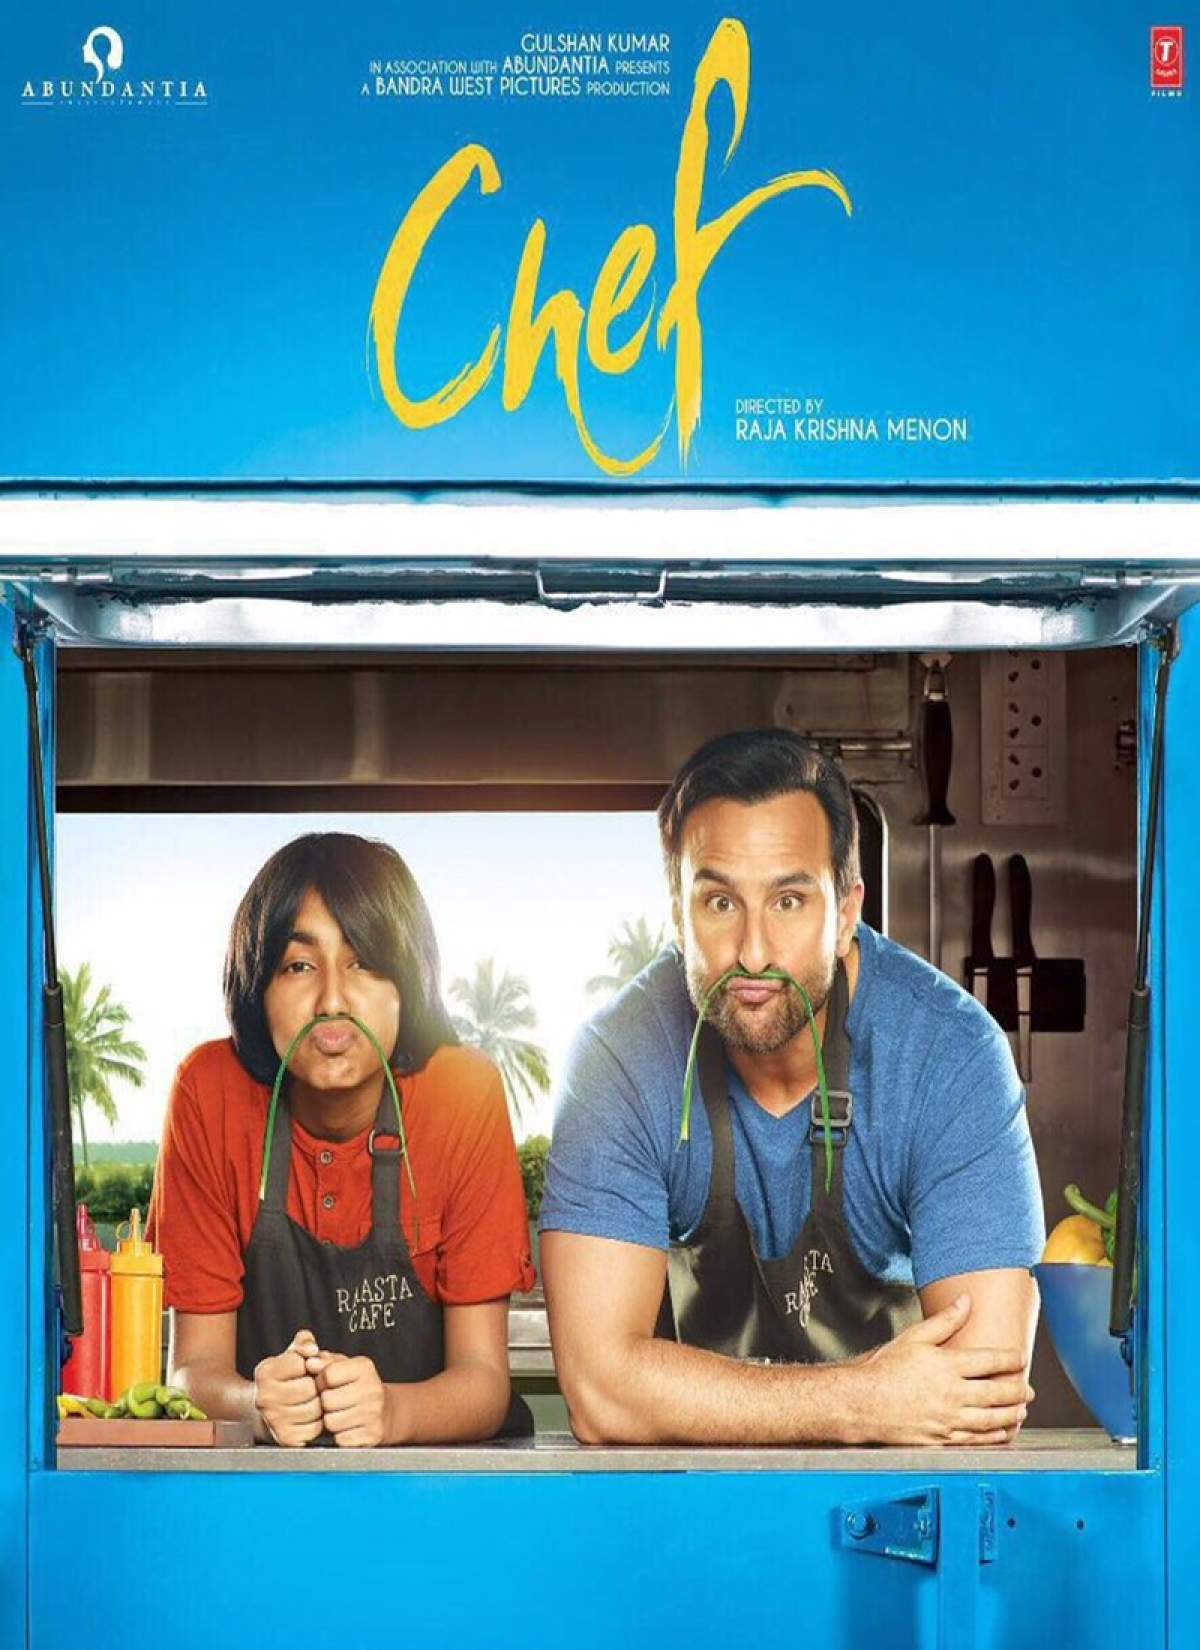 'Chef' Movie Review: A feel-good film on importance of relationships well served